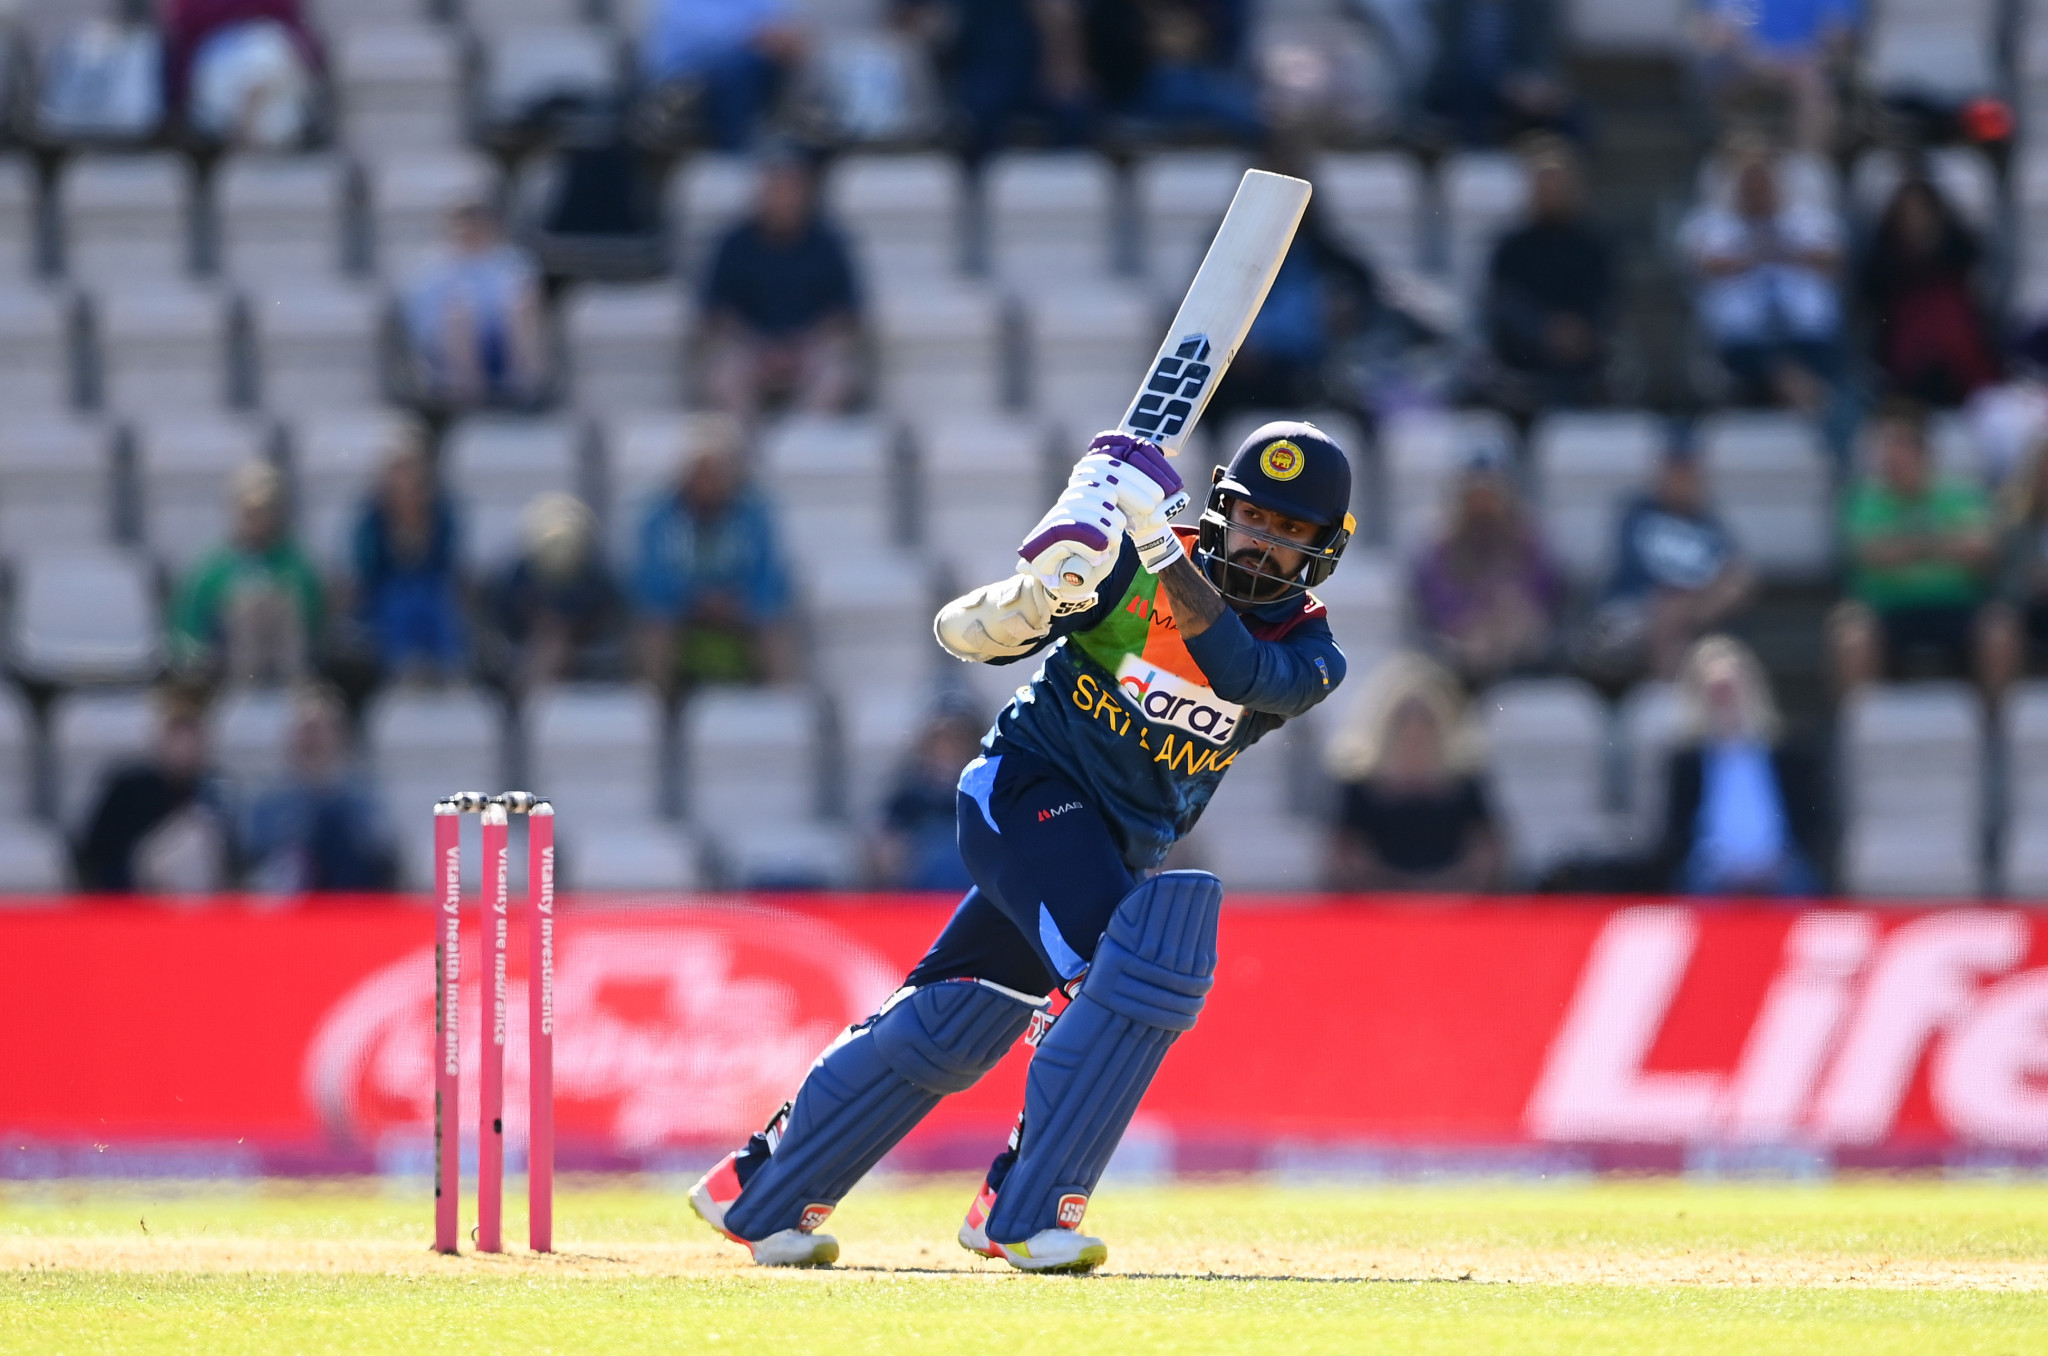 Niroshan Dickwella was seen smoking with Kusal Mendis in the streets of Durham ahead of Sri Lanka's meeting with England ©Getty Images